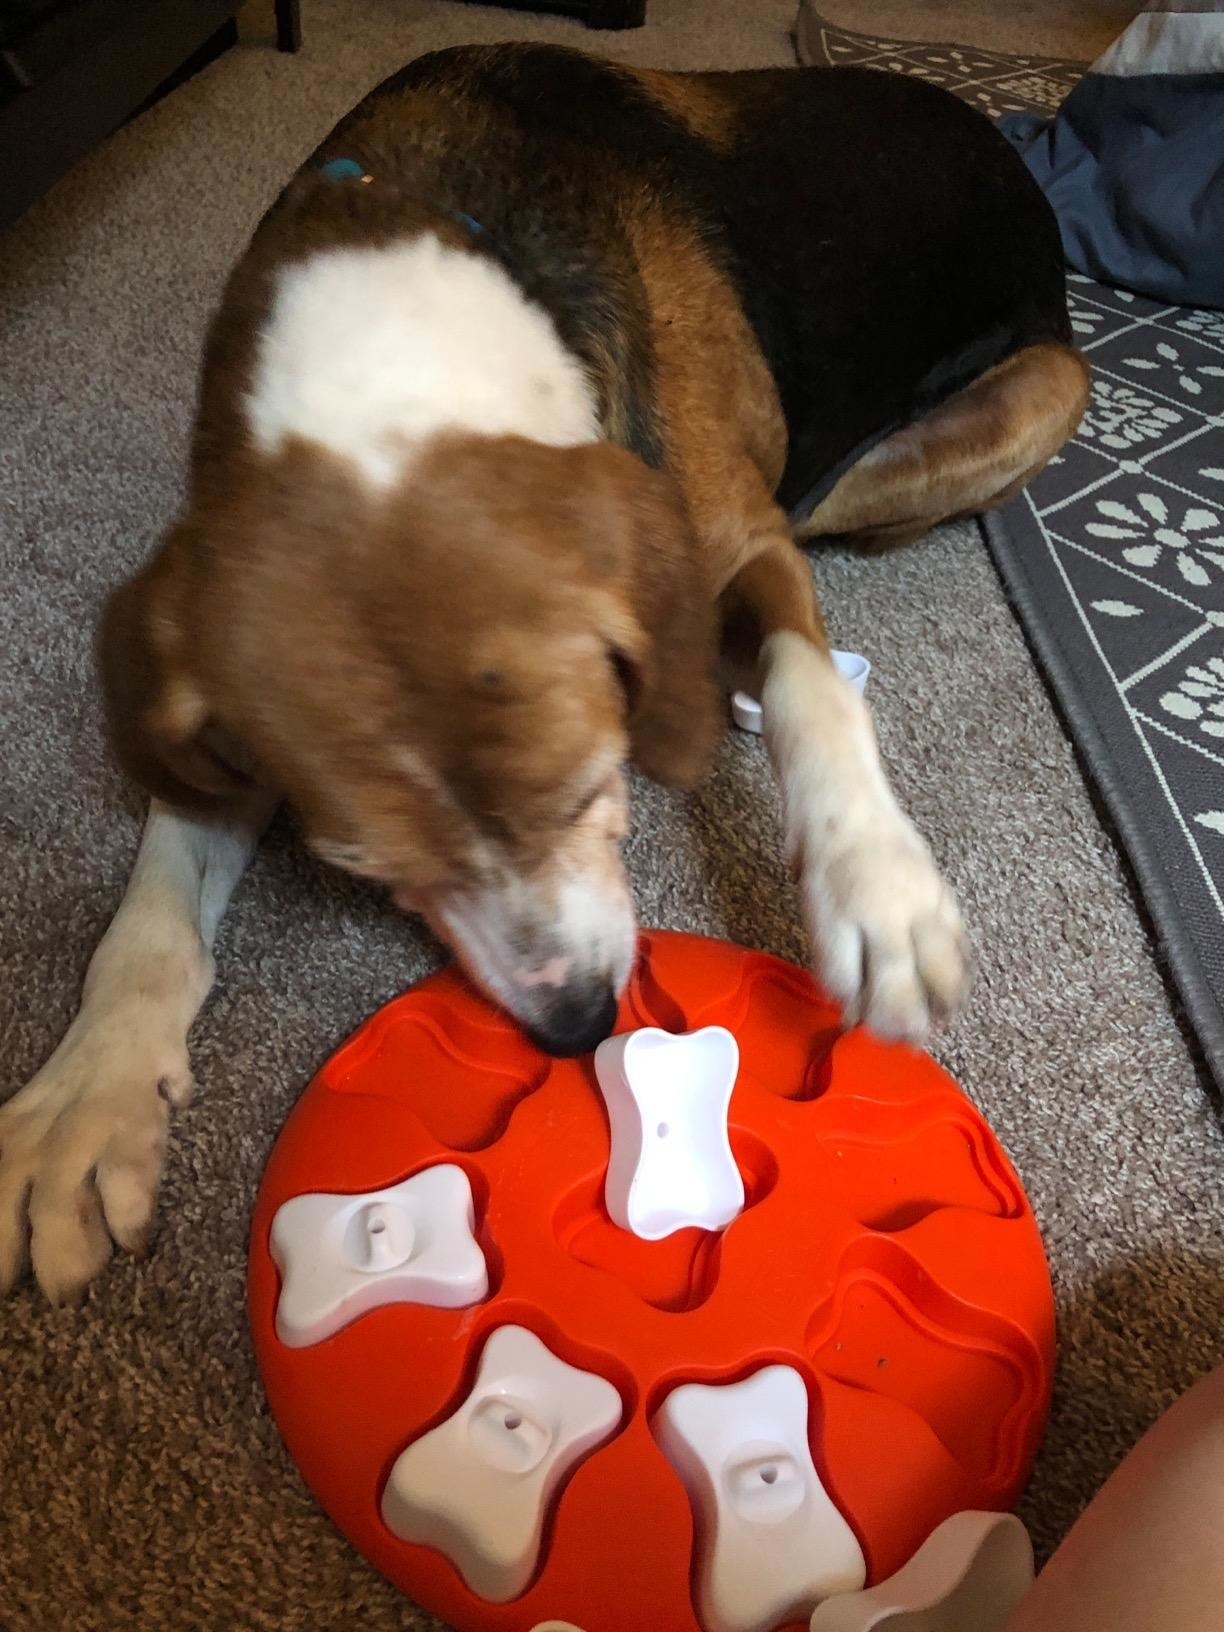 The toy, which is round, with covered bone-shaped compartments that the dog can remove to find the snacks